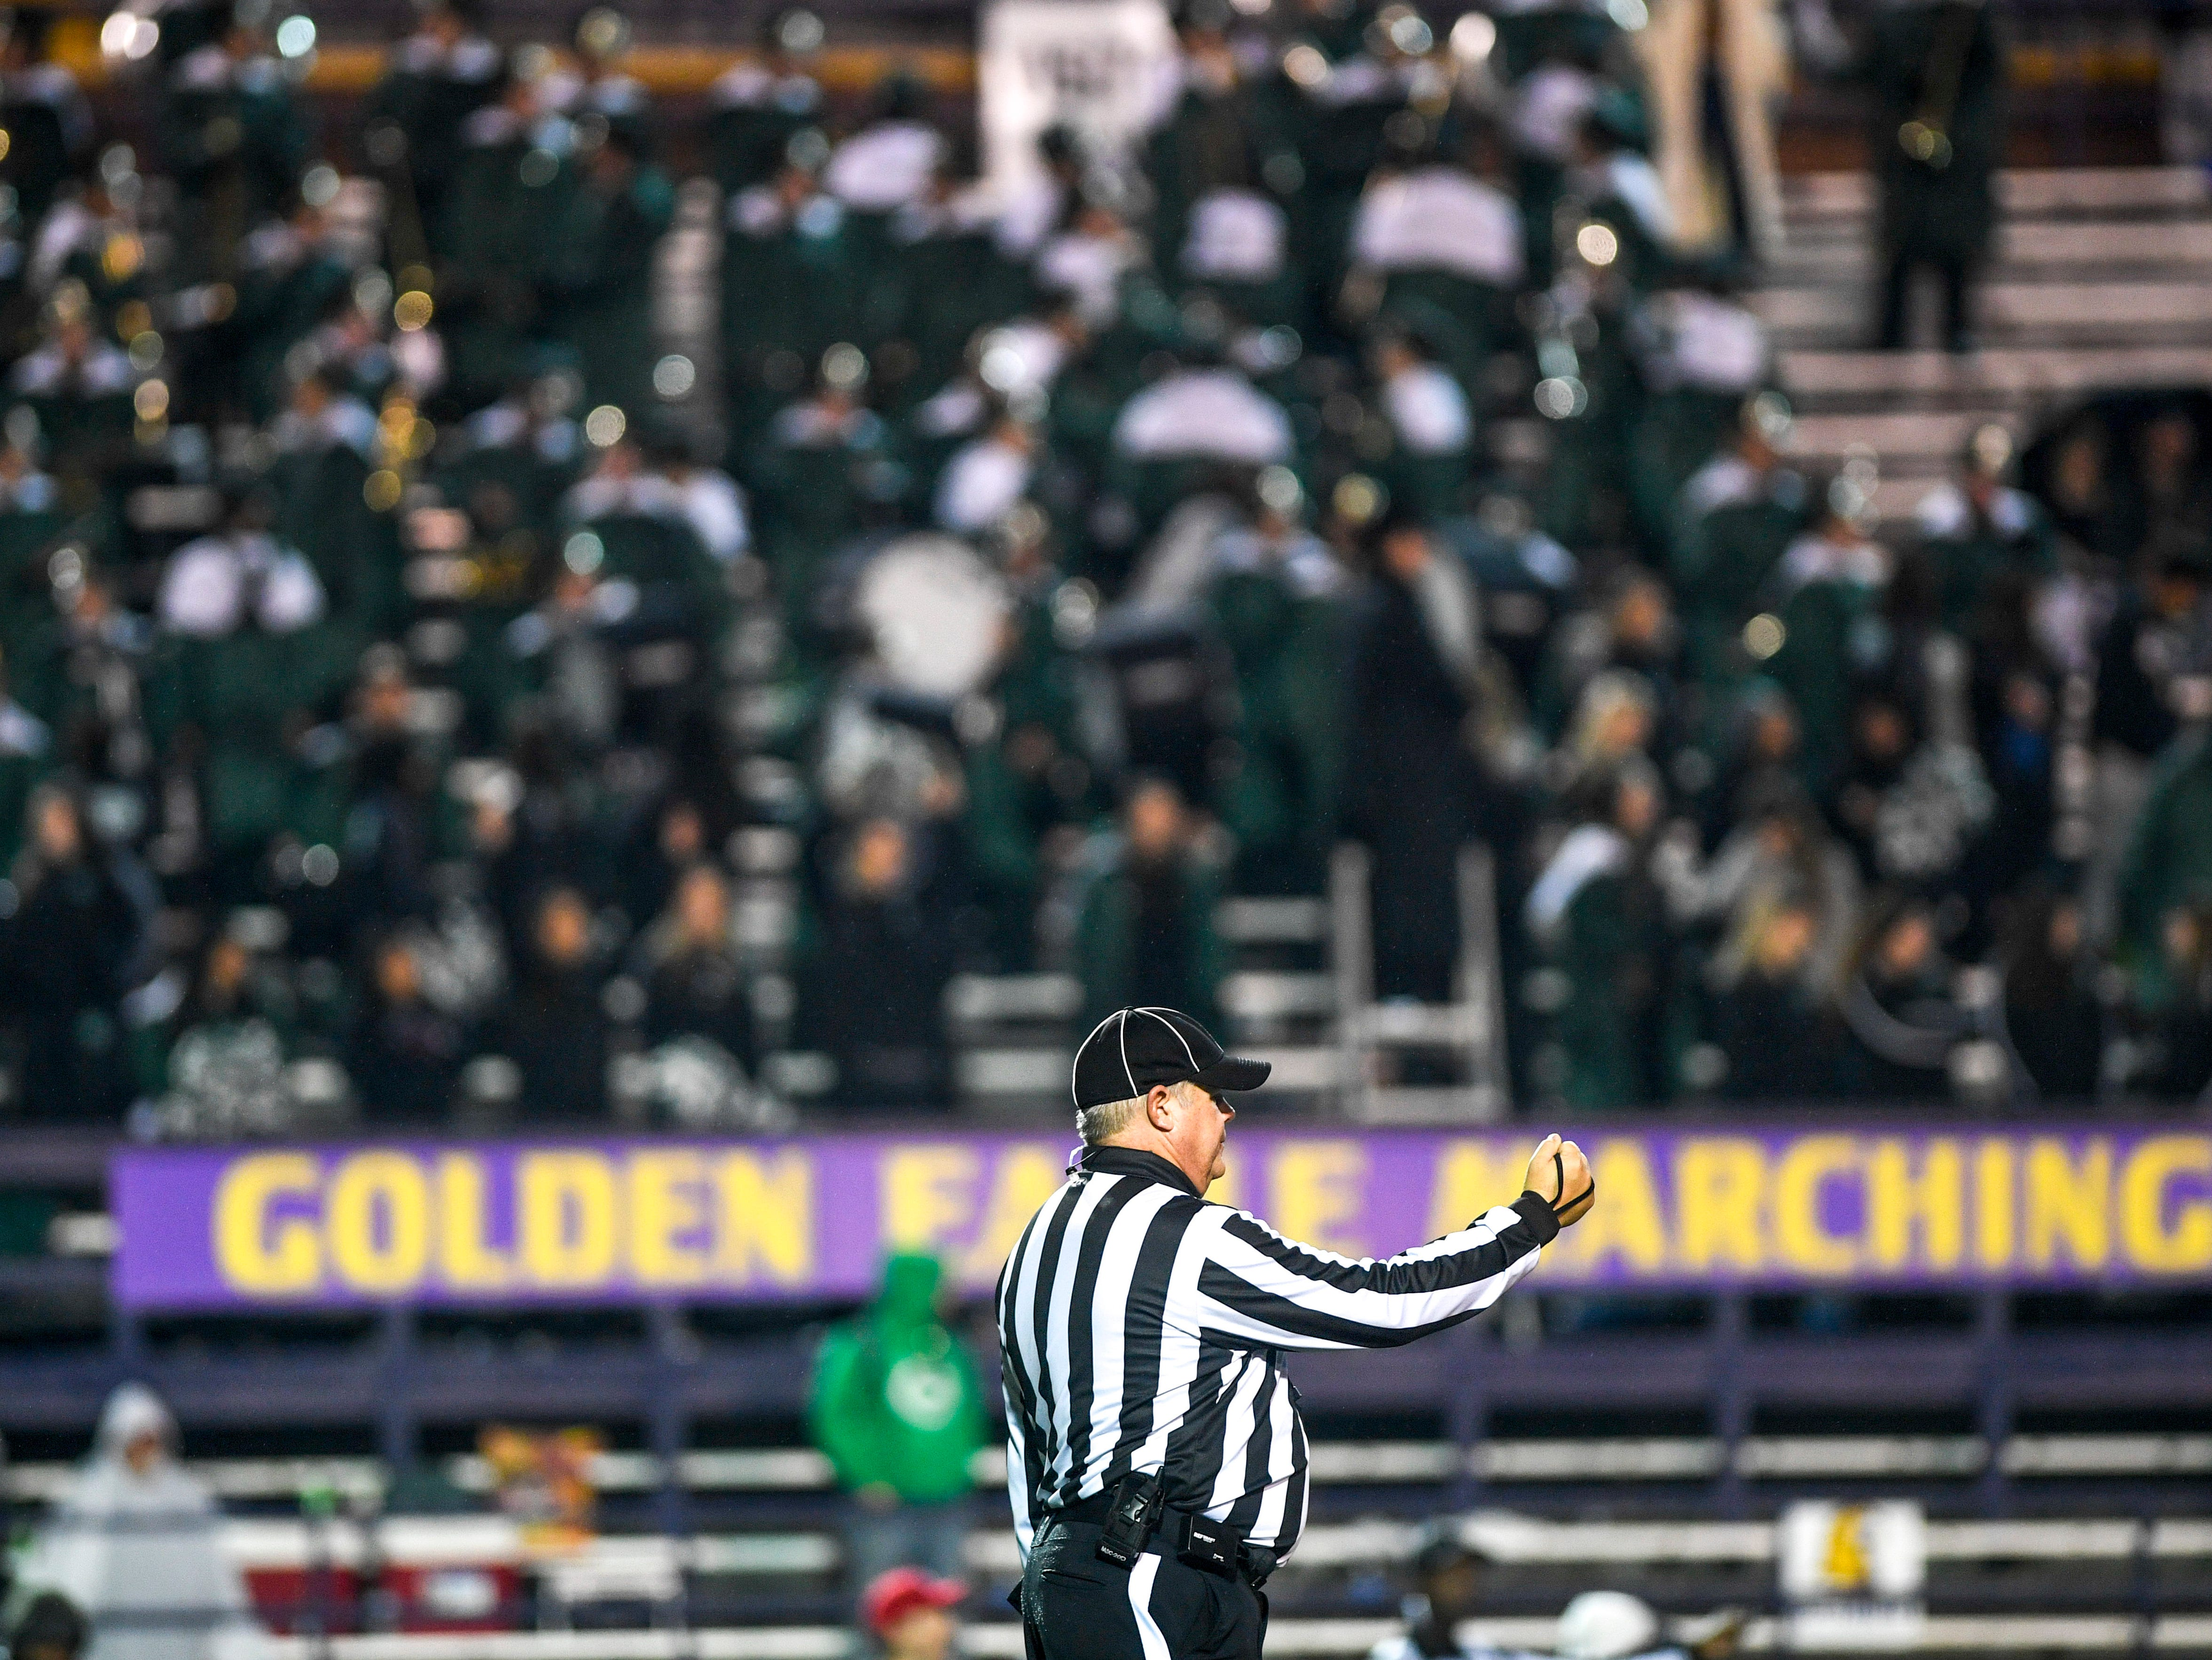 A referee motions a call from the endzoe during the Class 4A Blue Cross Bowl between Haywood and Greeneville at Tennessee Tech's Tucker Stadium in Cookeville, Tenn., on Thursday, Nov. 29, 2018.